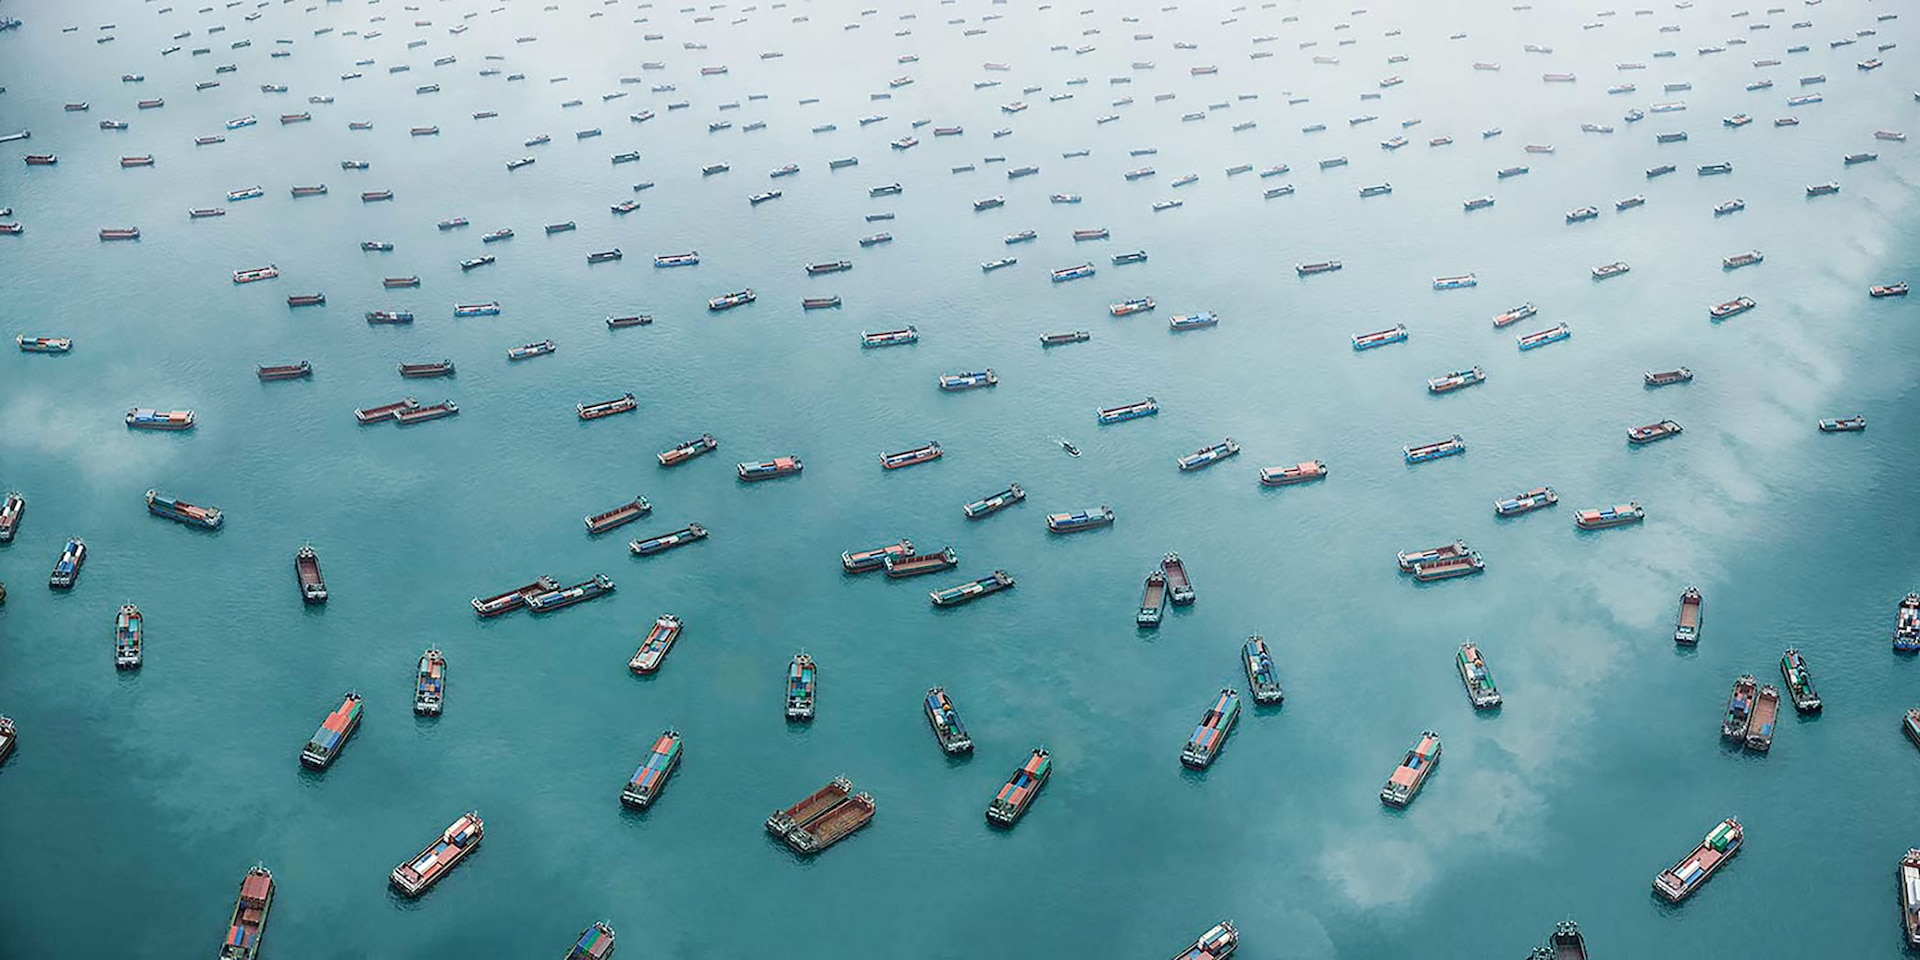 """China's """"little blue men, merchant and coast guard fleet have been deployed to obstruct freedom of navigation in the South China Sea. (East-West Institute, November 4, 2015)"""